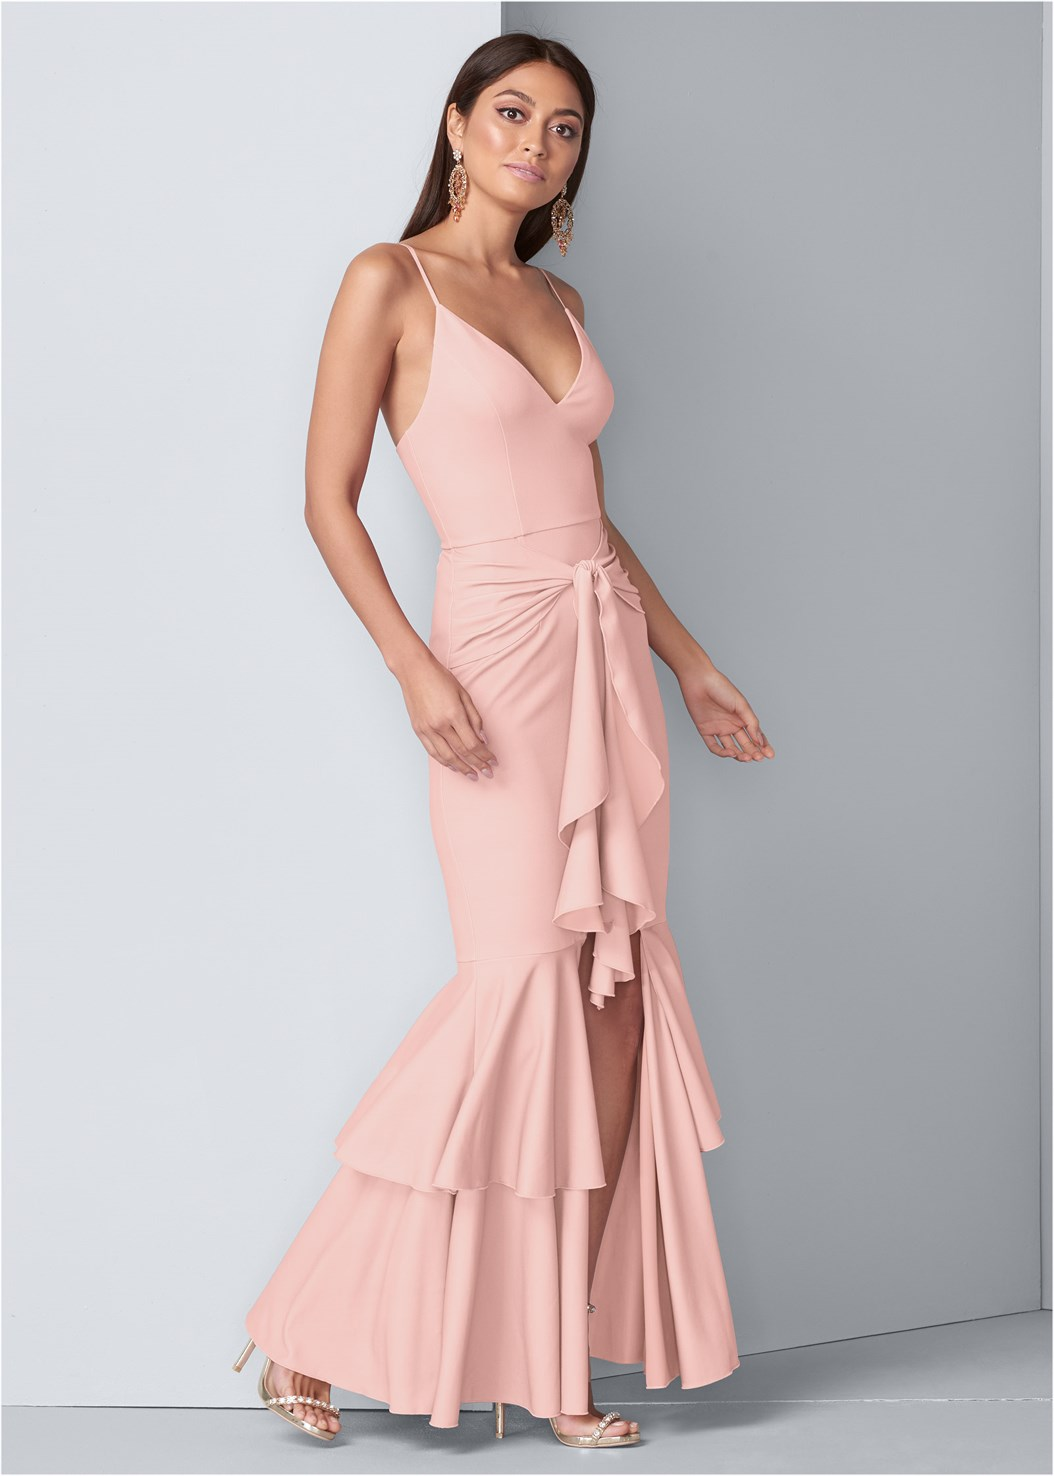 Ruffle Detail Gown,Seamless Full Body Shaper,Embellished Heels,Chandelier Earrings